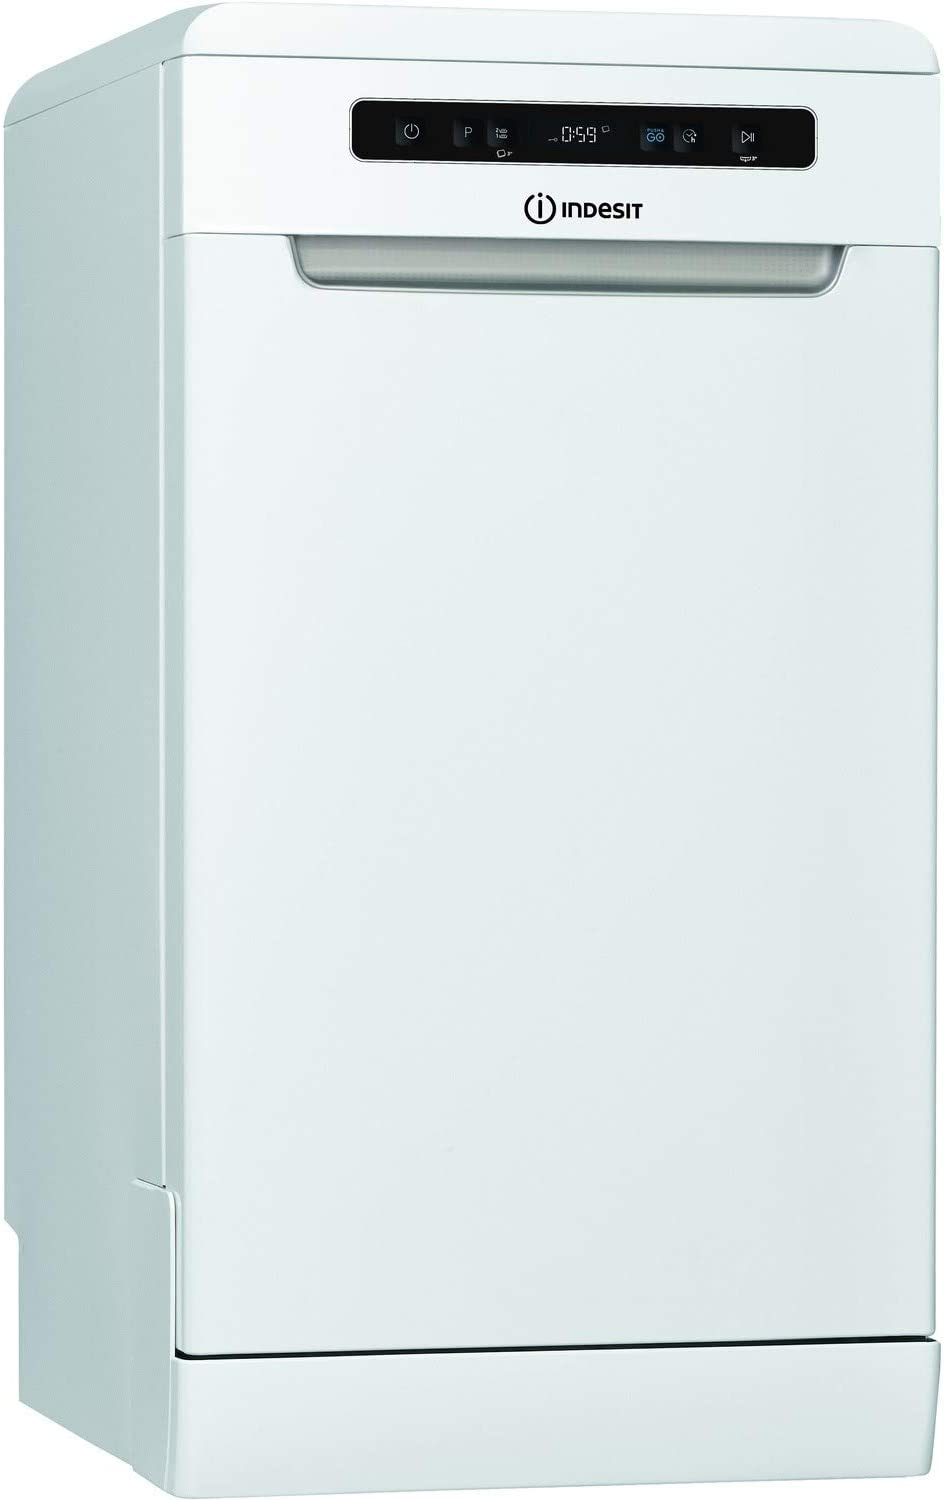 INDESIT DSFO3T224Z 10 Place Slimline Freestanding Dishwasher - White [Energy Class A++]